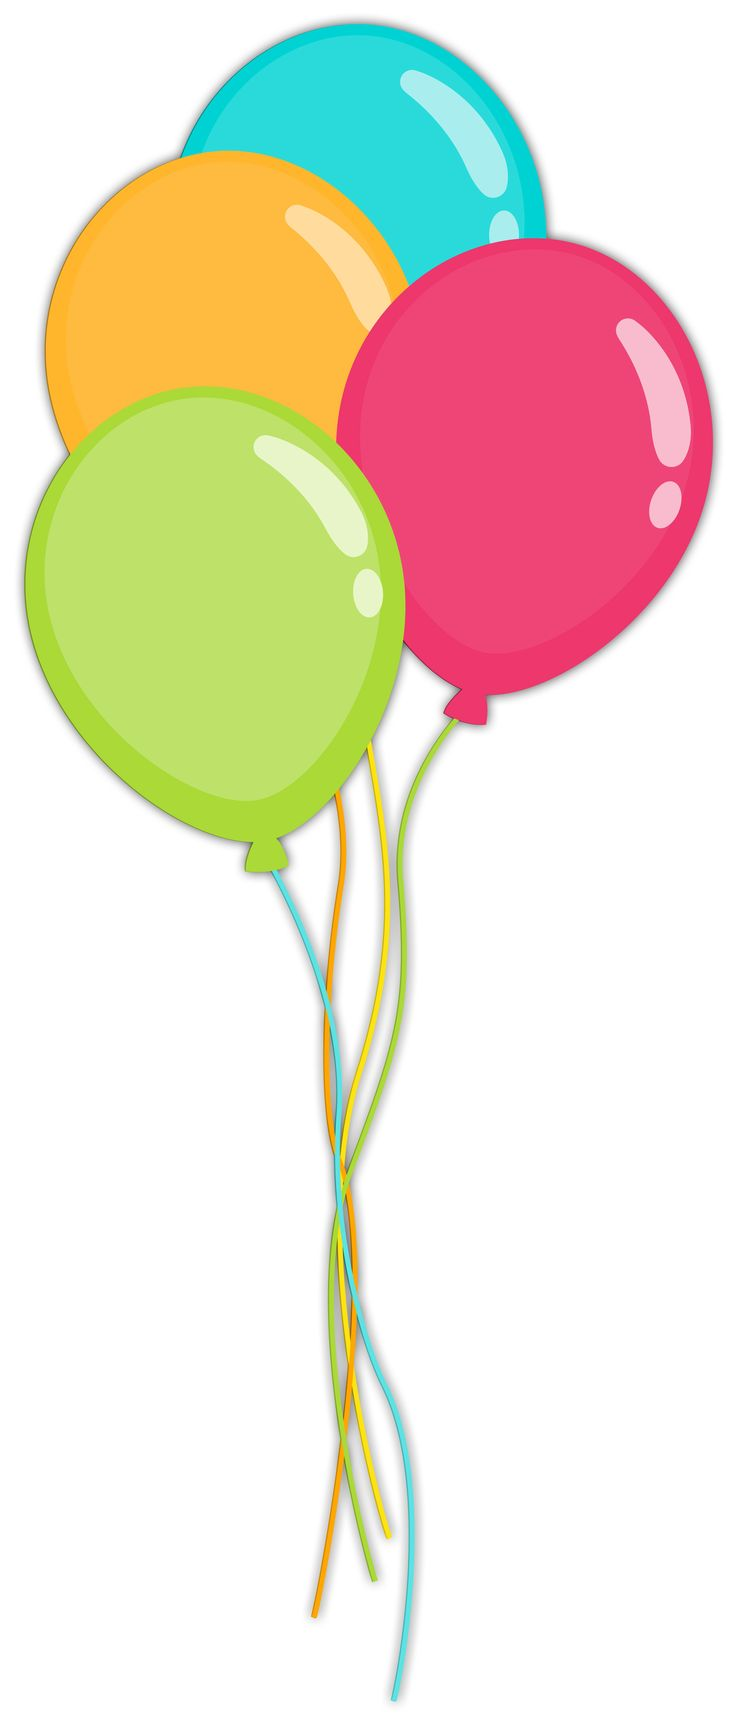 Birthday Ballons Clipart